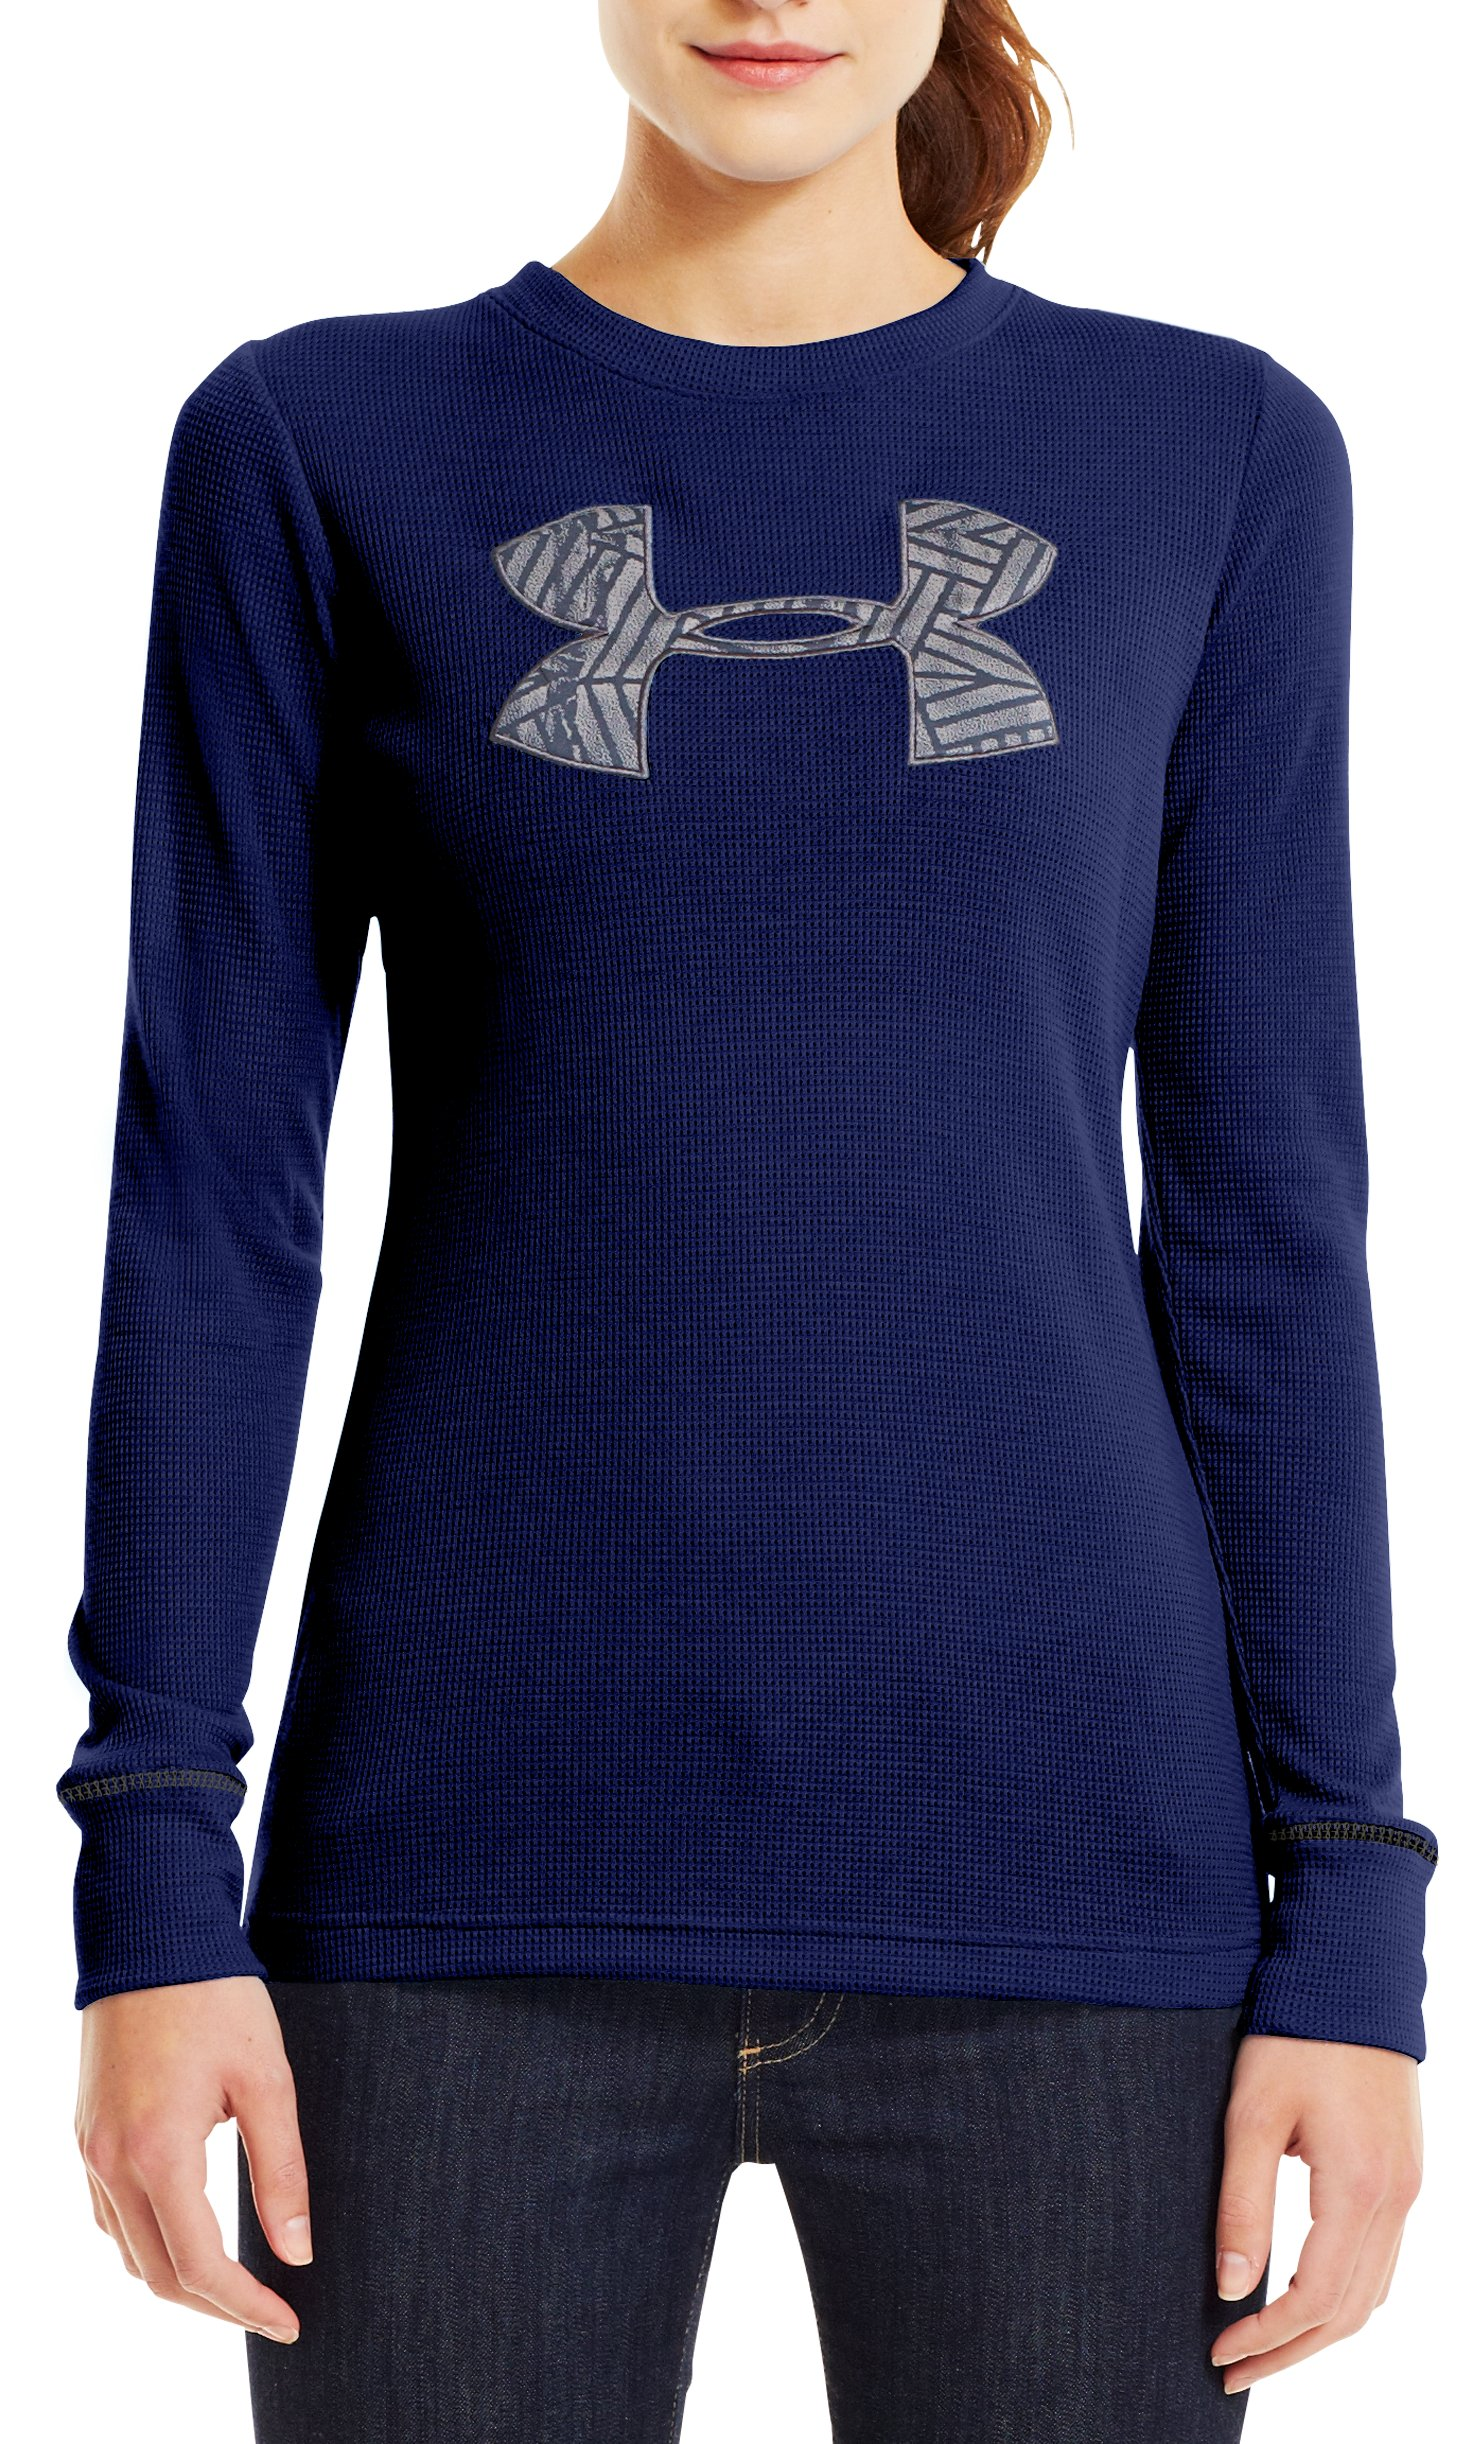 Women's Waffle Tackle Twill Long Sleeve Crew, REGAL